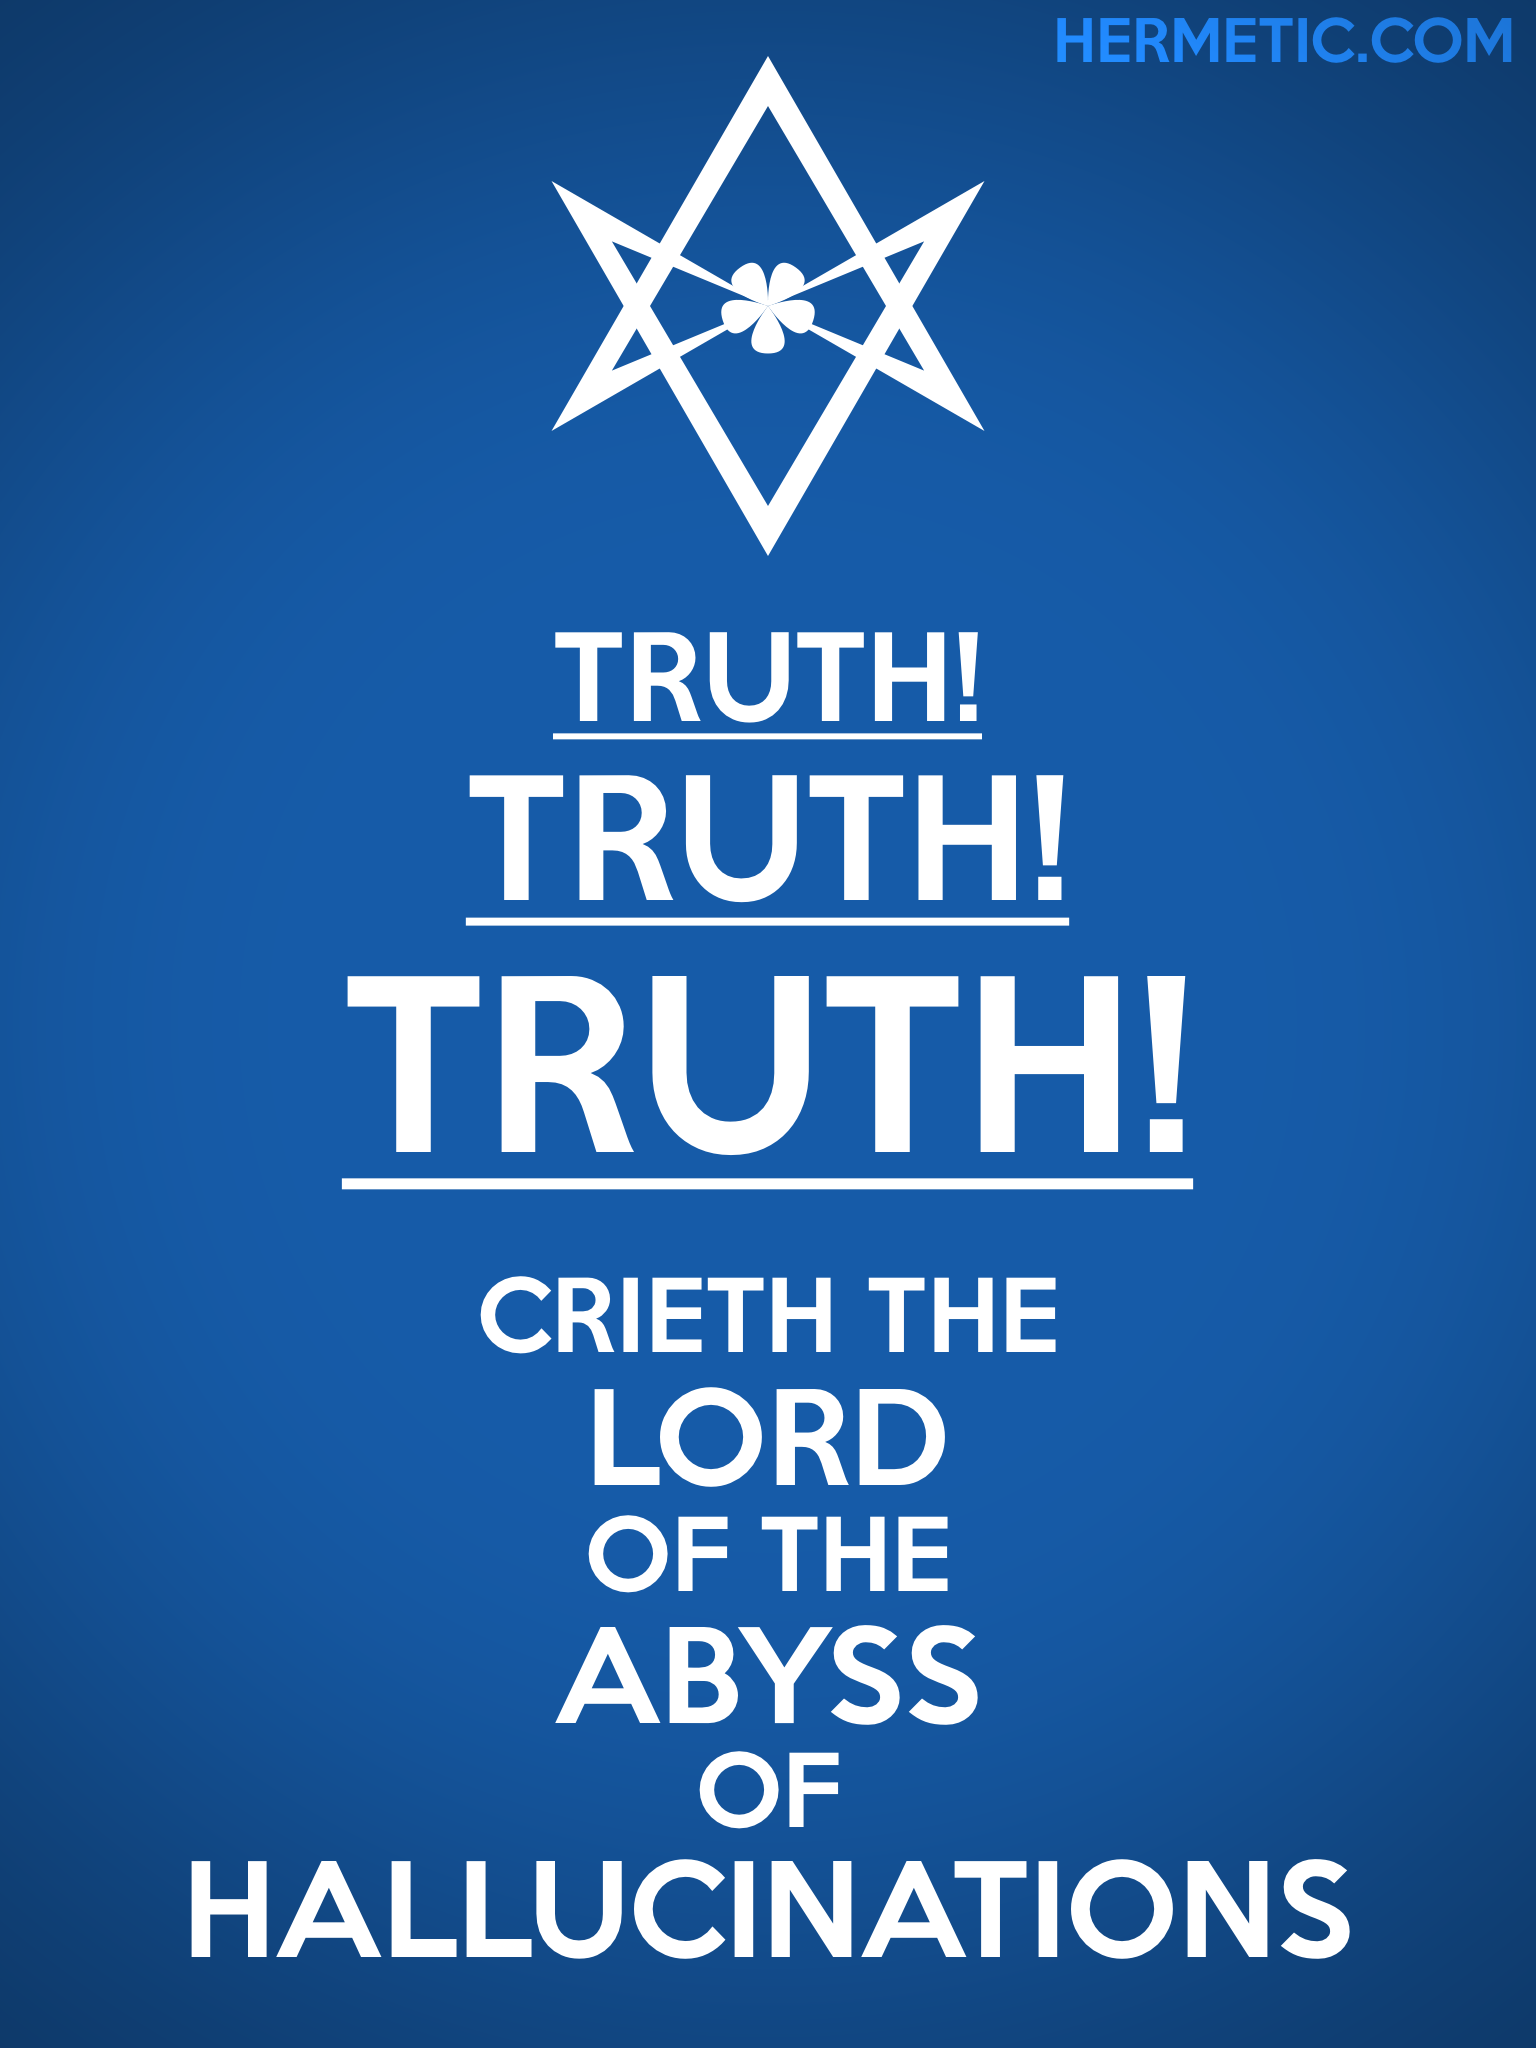 Unicursal TRUTH TRUTH TRUTH Propaganda Poster from Hermetic Library Office of the Ministry of Information